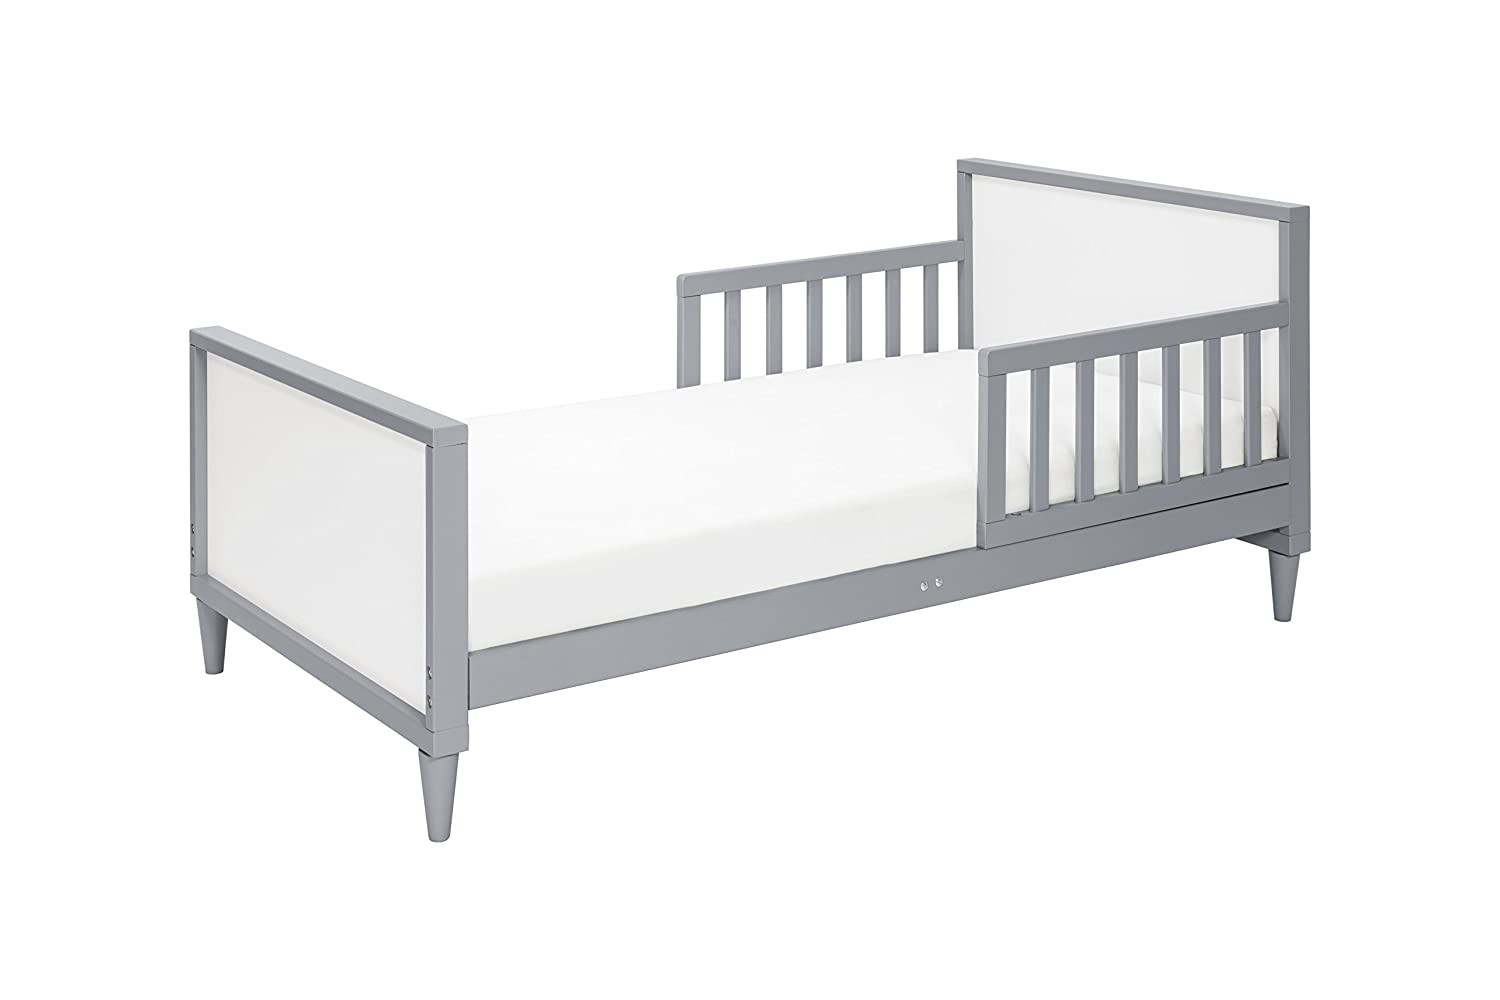 Babyletto Ziggy Toddler Bed, Grey/White on sumeer homes, samantha homes, bella homes, minnie homes, katie homes, victoria homes, rocky homes,